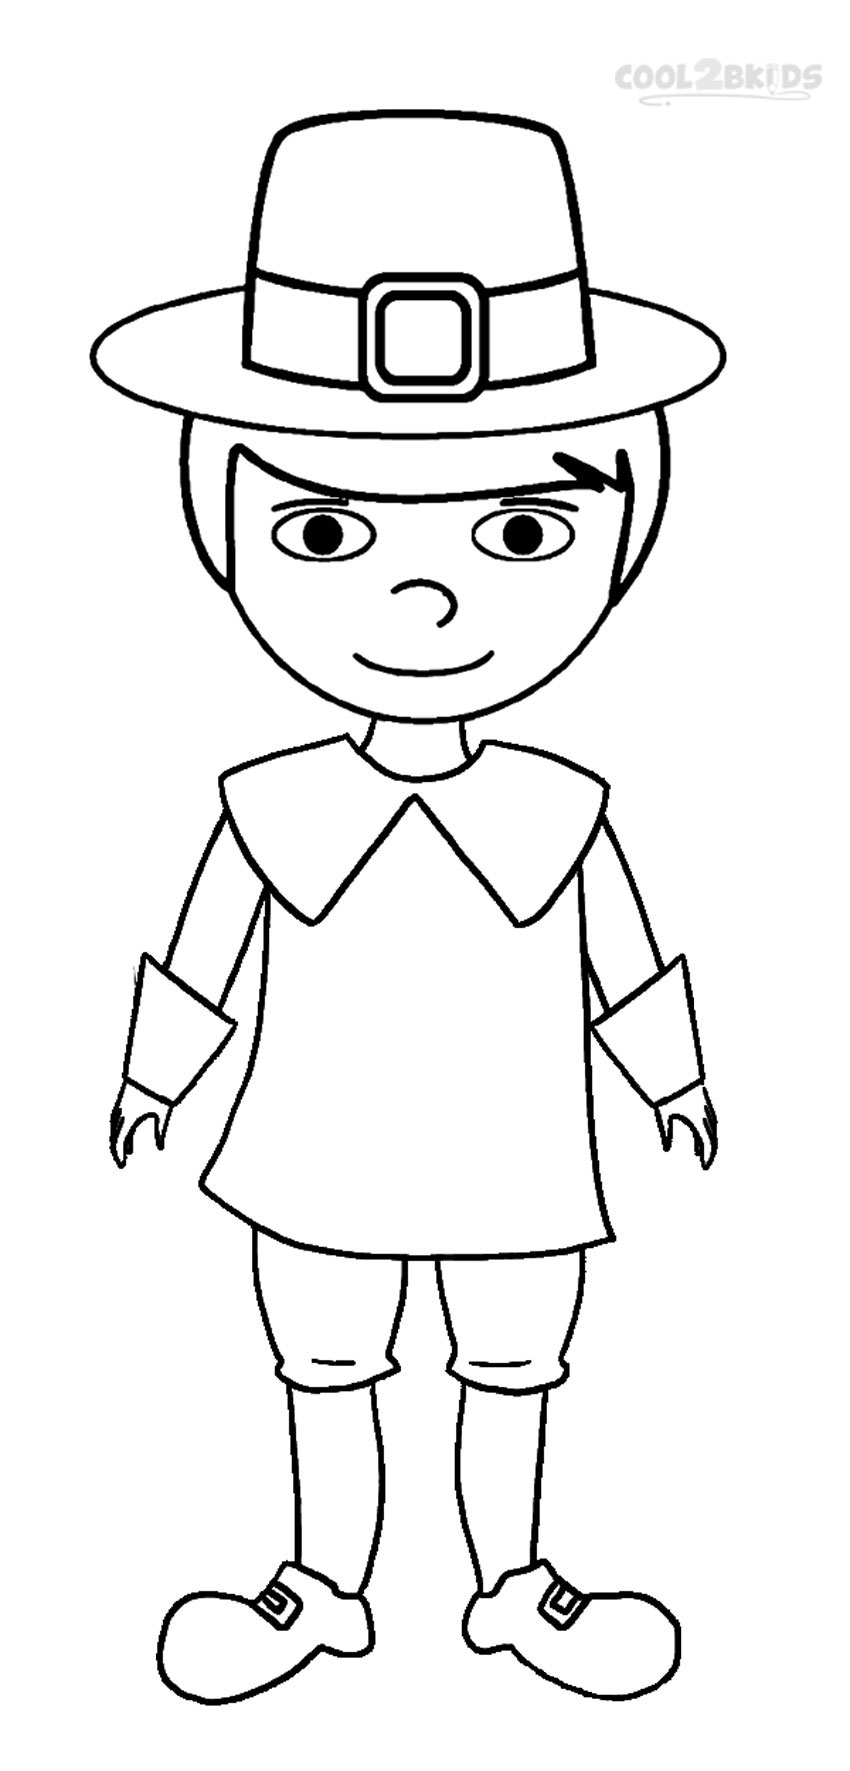 boy coloring pages for print - photo#48